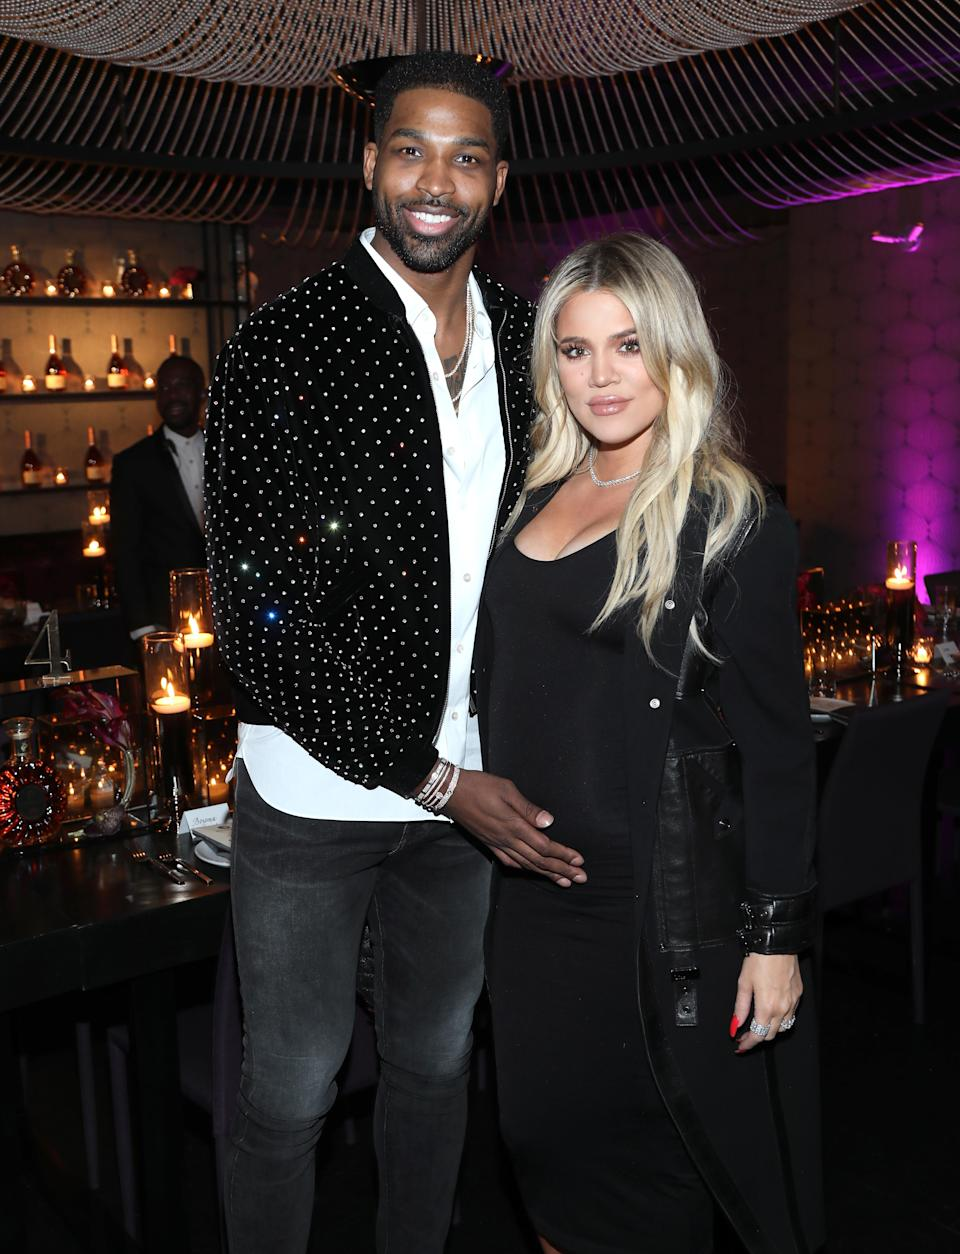 NBA star Tristan Thompson is accused of allegedly cheating on pregnant girlfriend, Khloé Kardashian. (Getty Images)